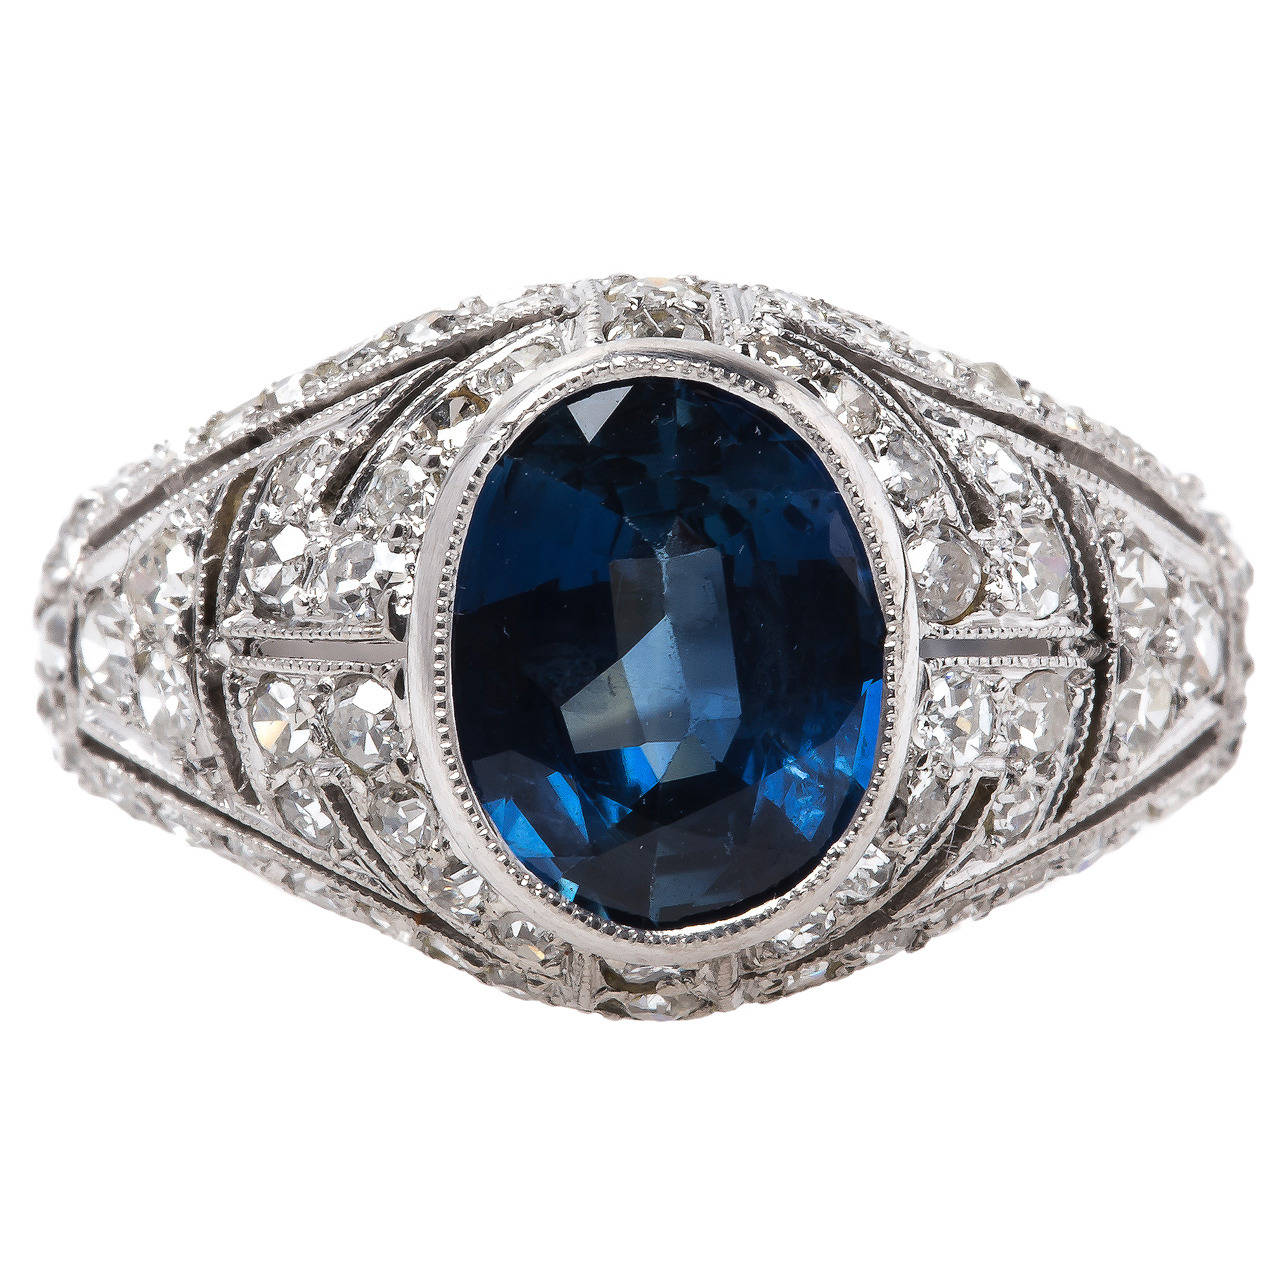 Edwardian Era Sapphire Diamond Platinum Bombe Engagement